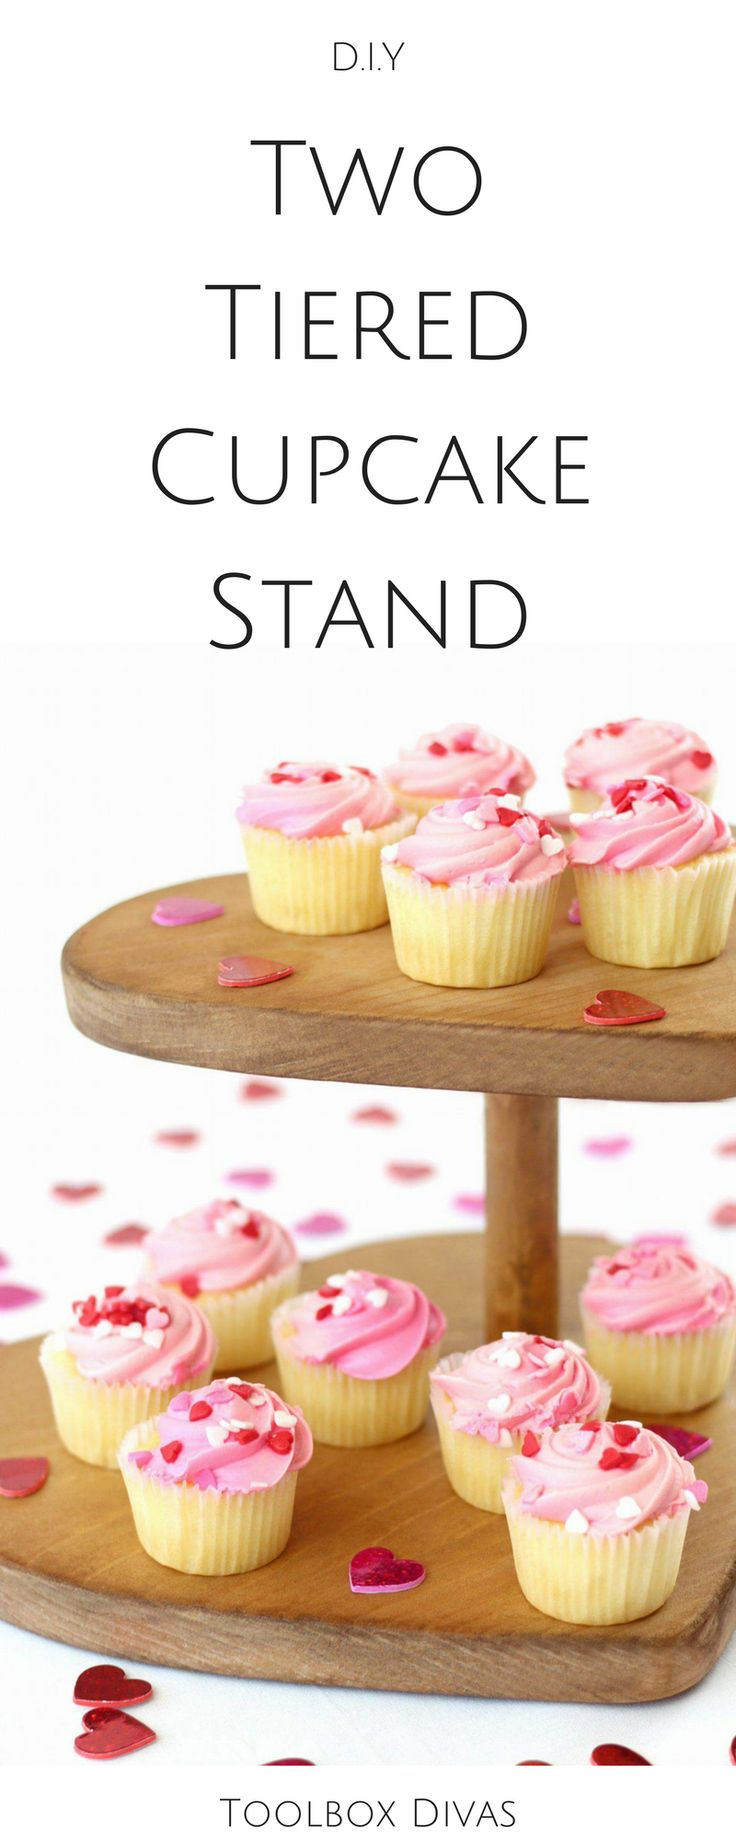 DIY Cupcake stand. Two tier heart stand. Woodworking project. Can be used for cake and cupcakes. Great for Valentines Day, wedding cake receptions, bridal showers.  #Weddingcake #cupcakes #cakestand #Cupcakeholder #ValentinesDay @ToolboxDivas